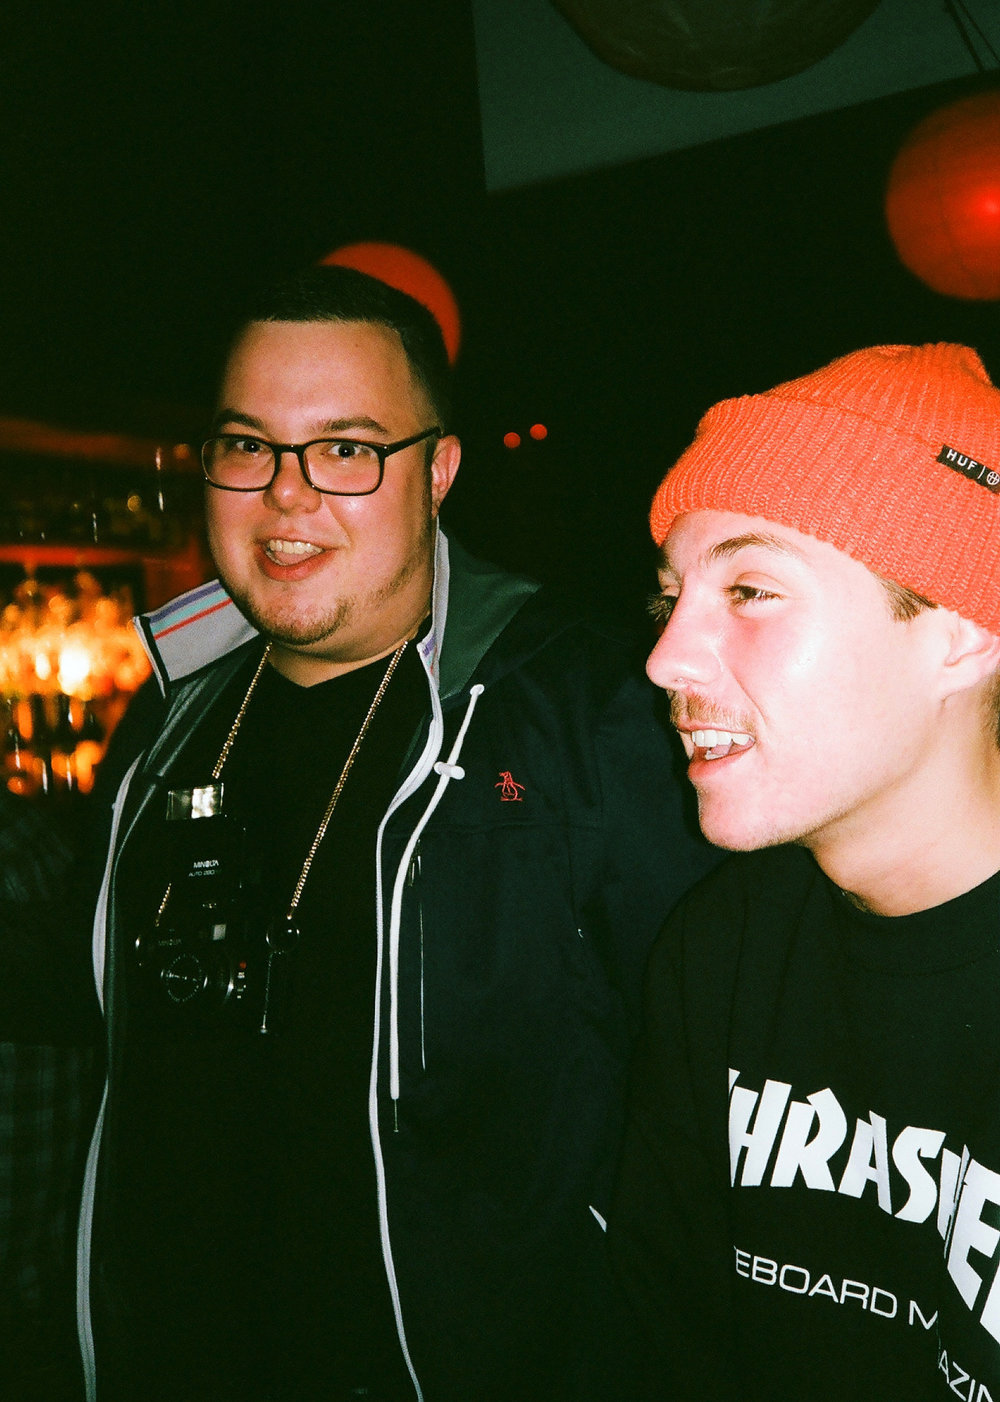 jaredgaustad: Nick Garcia snapped this photo of Andy MC and myself at the NIGHTEDLife after party. Feeling very blessed and fortunate to have met Andy. Your missed by many and forever in out hearts. I know wherever you are, you've most likely got your gold chained cam locked an loaded ready for action like a true #nightedlifer  rest in peace my friend